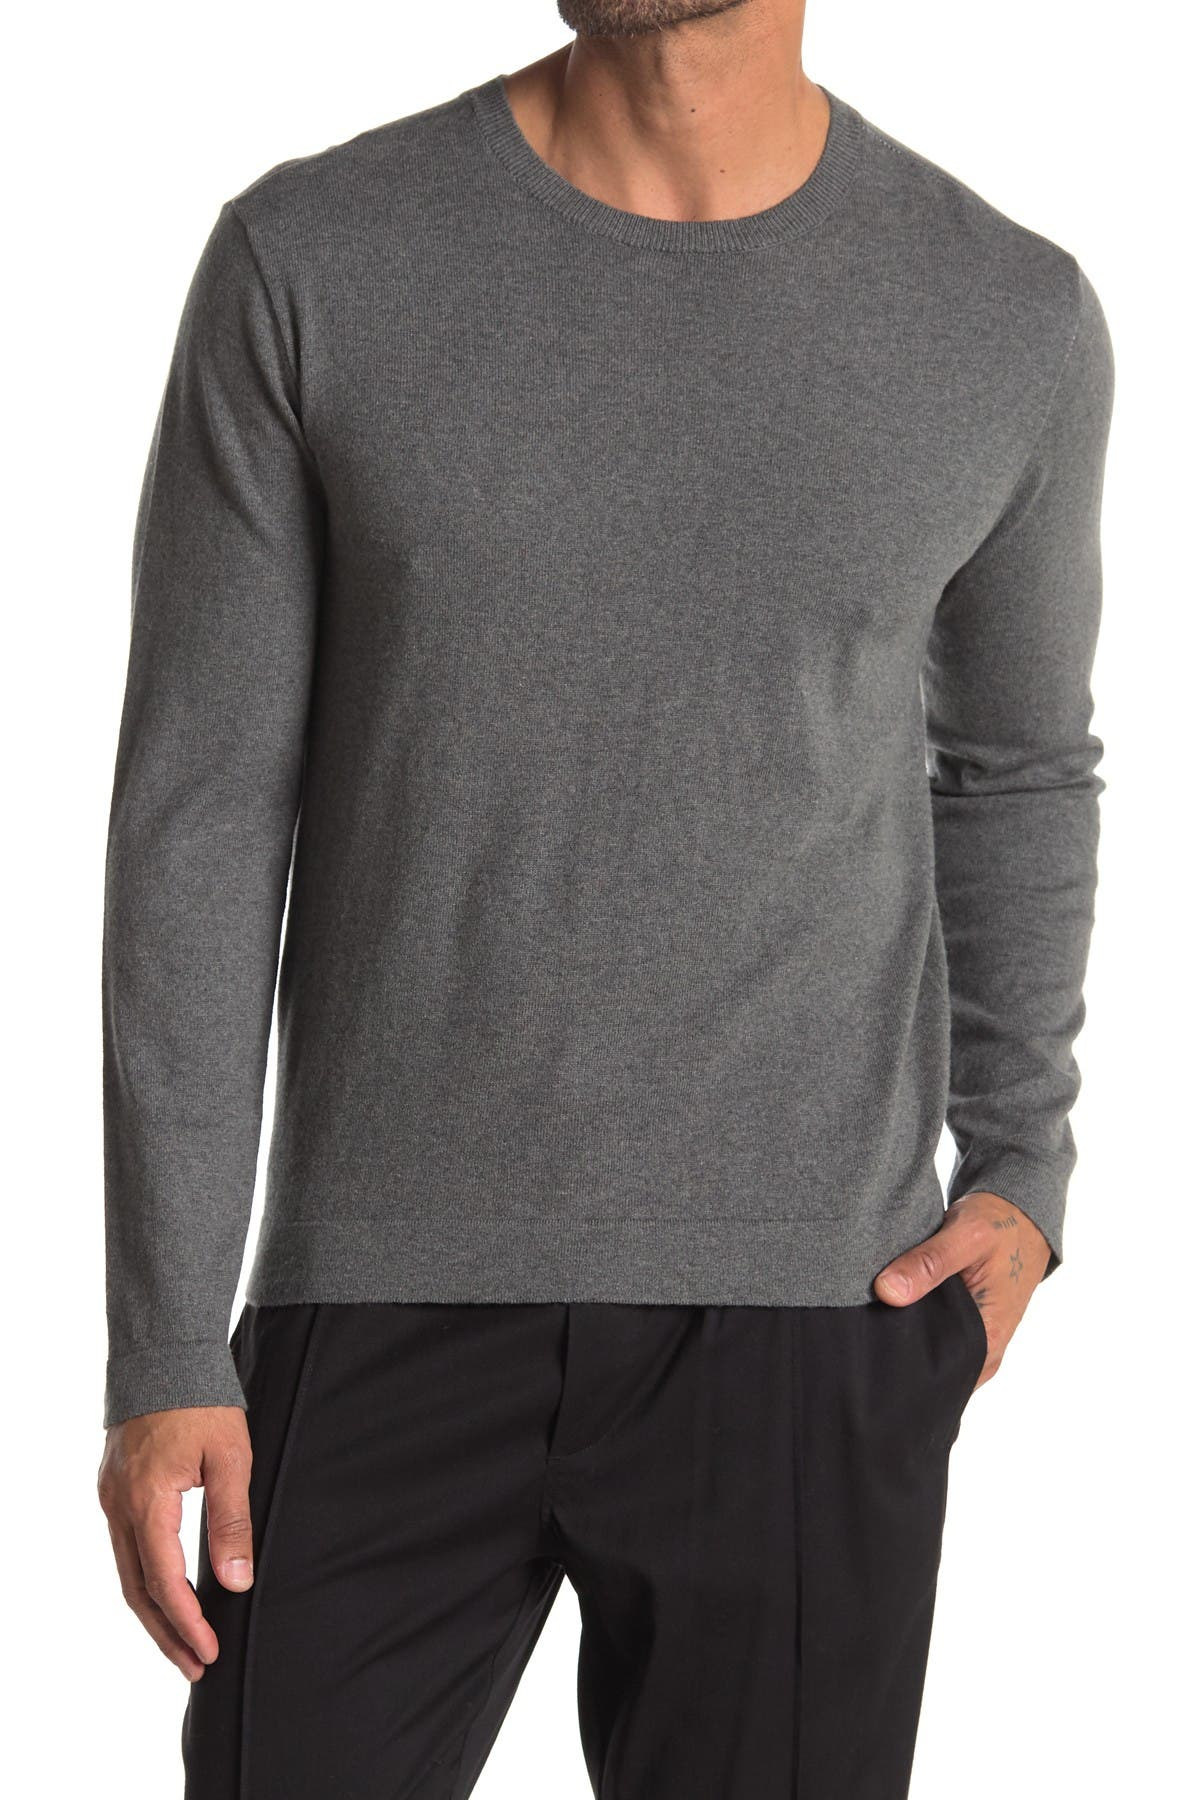 Image of AMICALE Cotton Cashmere Blend Crew Neck Sweater